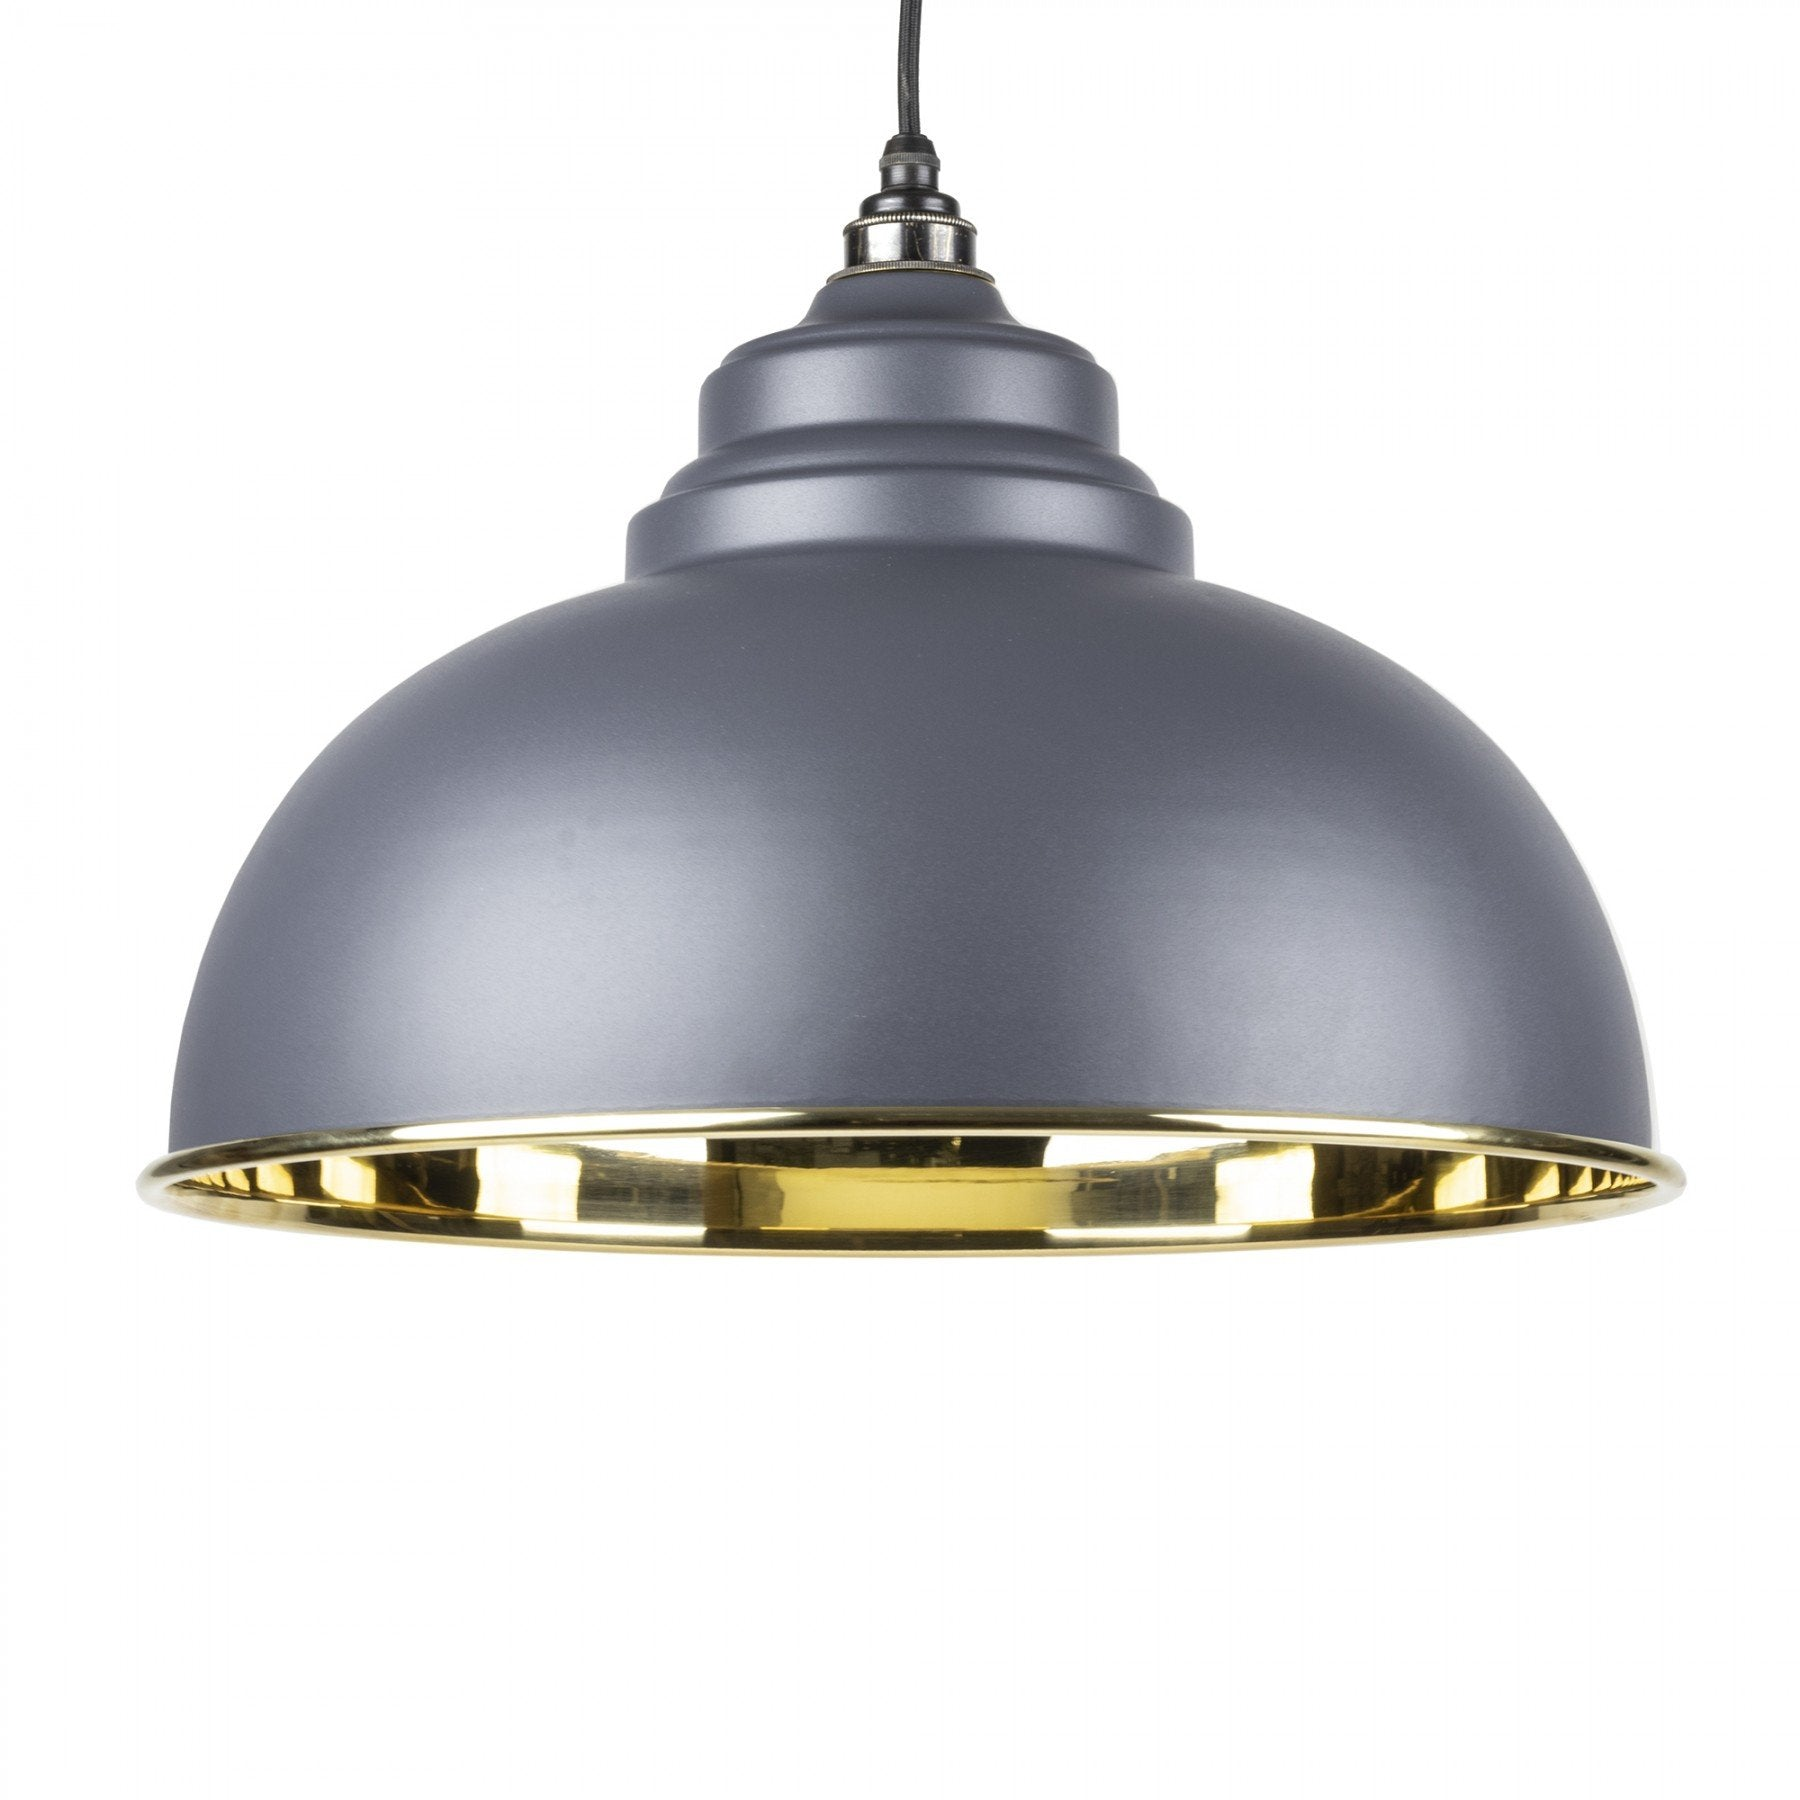 From The Anvil Dark Grey & Smooth Brass Interior Harborne Pendant - No.42 Interiors